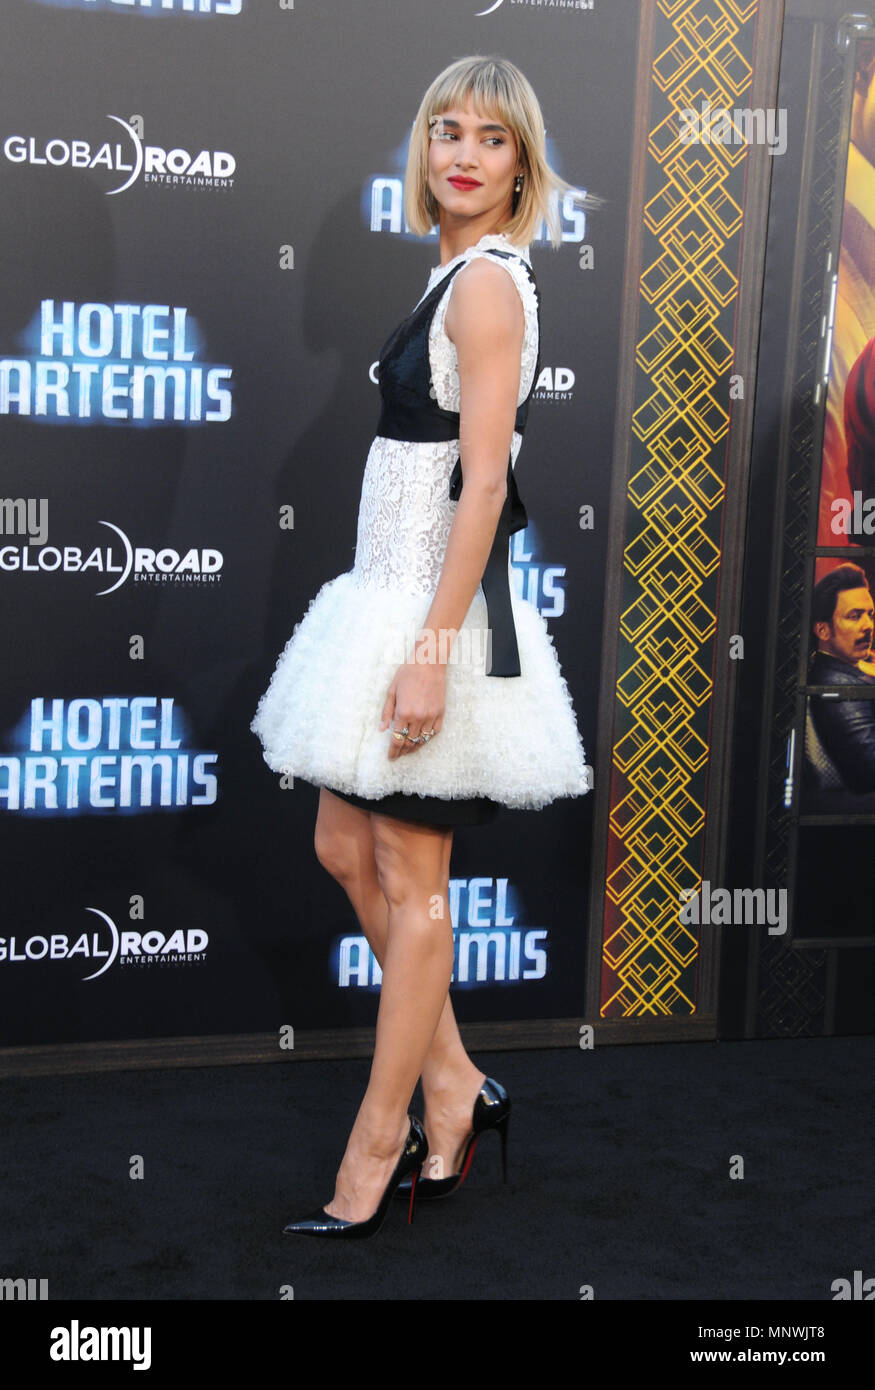 Actress Sofia Boutella Attends The Los Angeles Premeire Of Hotel Artemis On May 19 2018 At Regency Bruin Westwood Village Theatre In